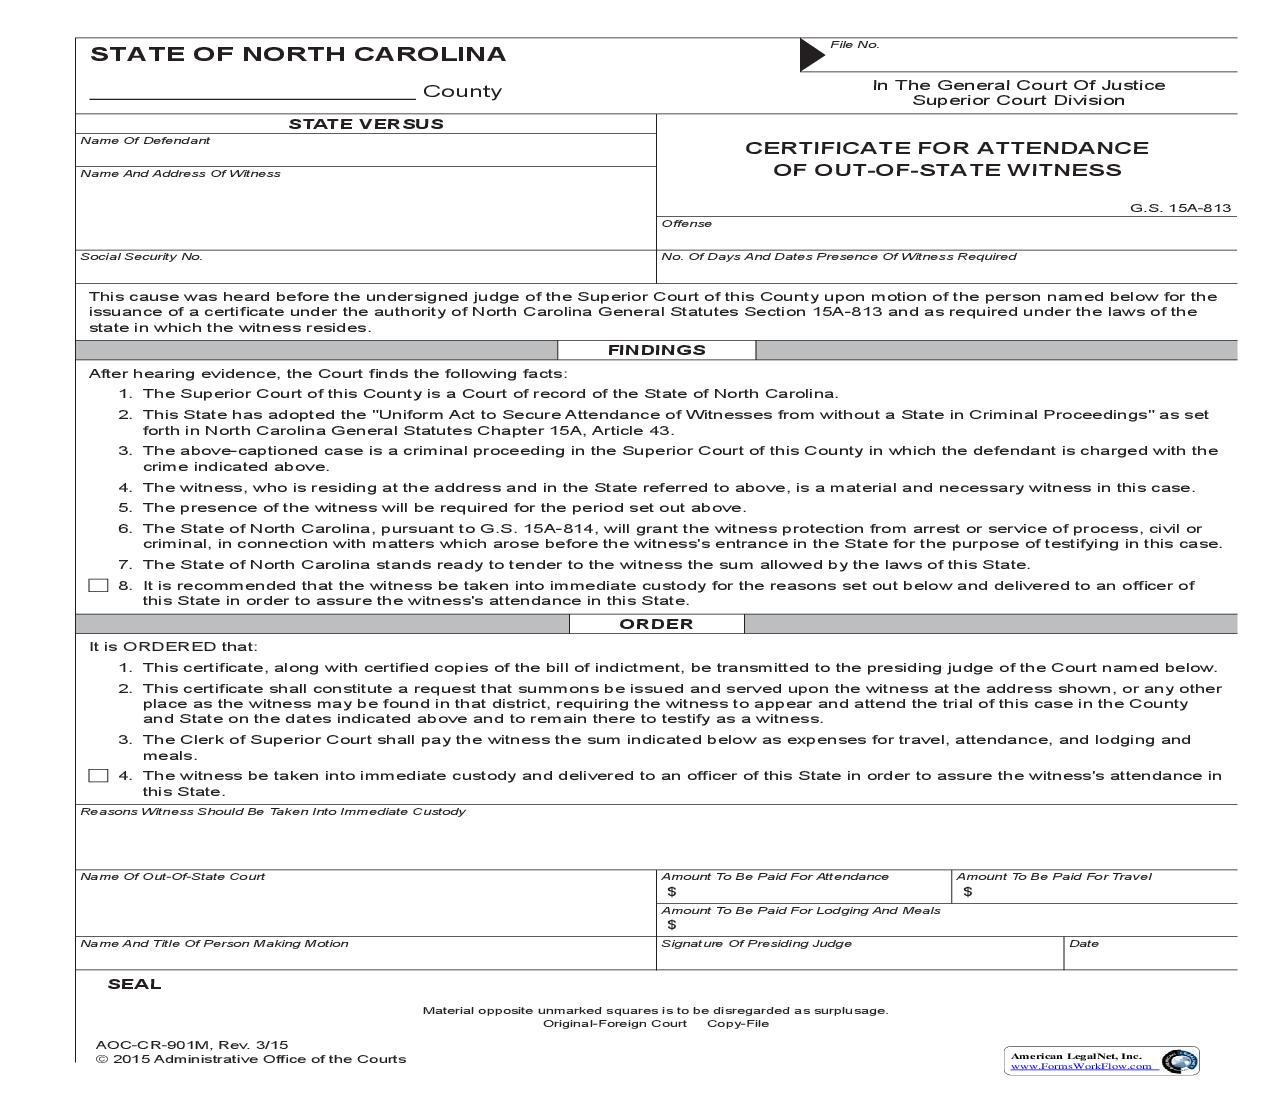 Certificate For Attendance Of Out Of State Witness {CR-901M} | Pdf Fpdf Doc Docx | North Carolina